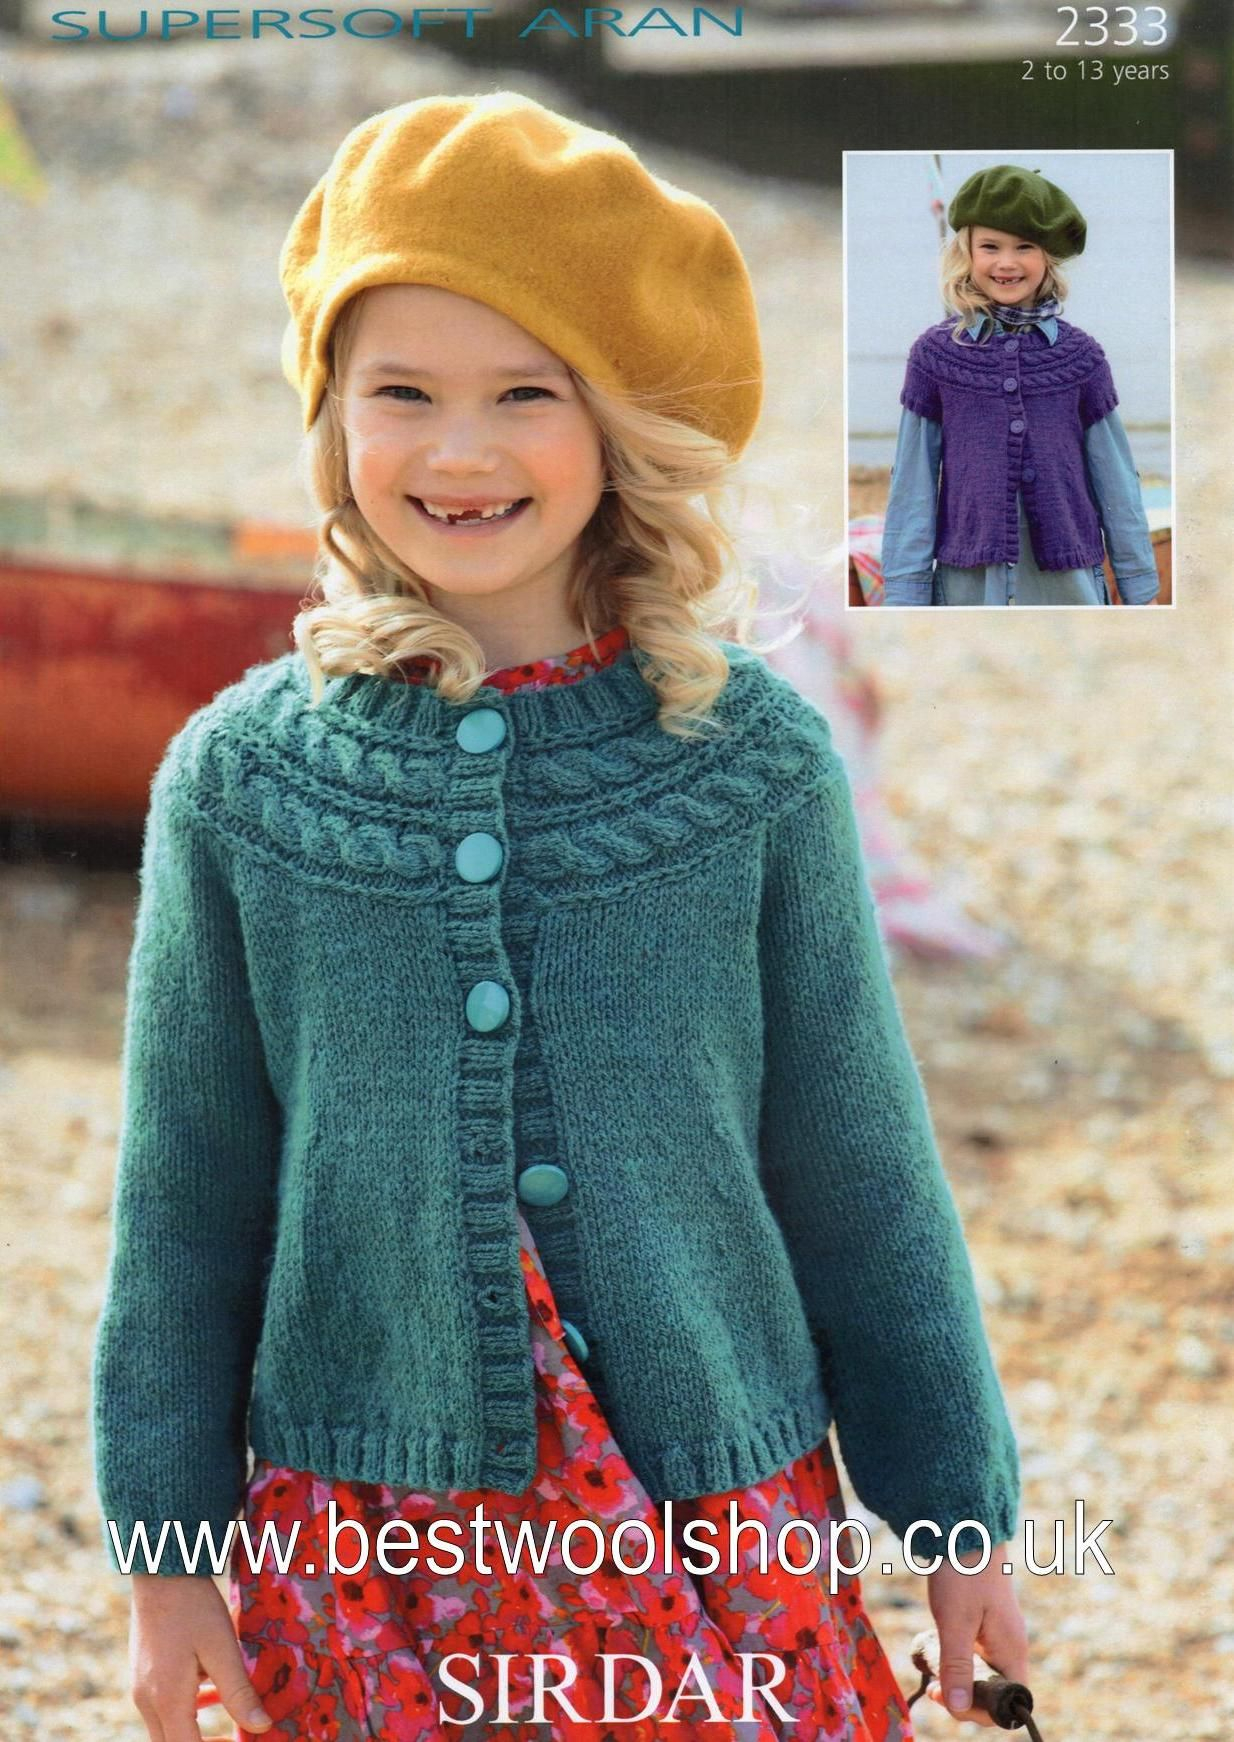 Childrens Aran Knitting Patterns 2333 Sirdar Supersoft Aran Cabled Yolk Long Short Sleeved Cardigan Knitting Pattern To Fit 2 To 13 Years